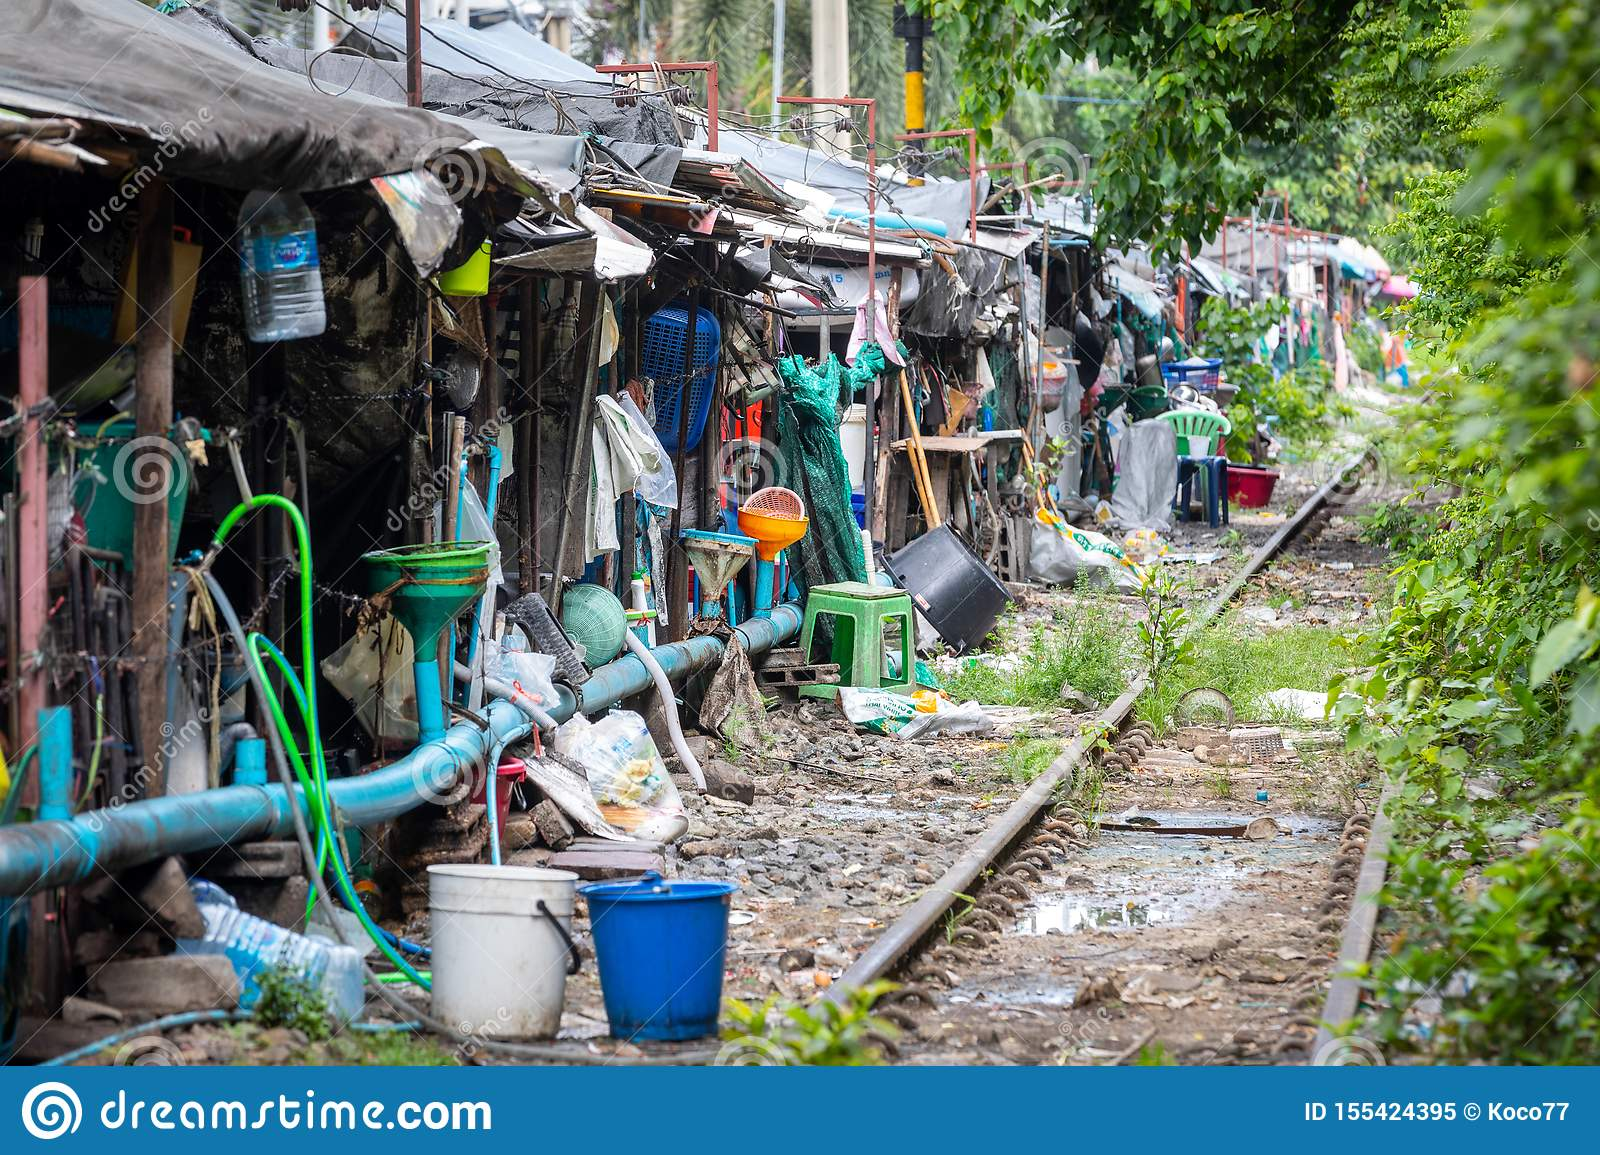 Row of shacks with small businesses beside the tracks of a train in central Bangkok in Thailand.